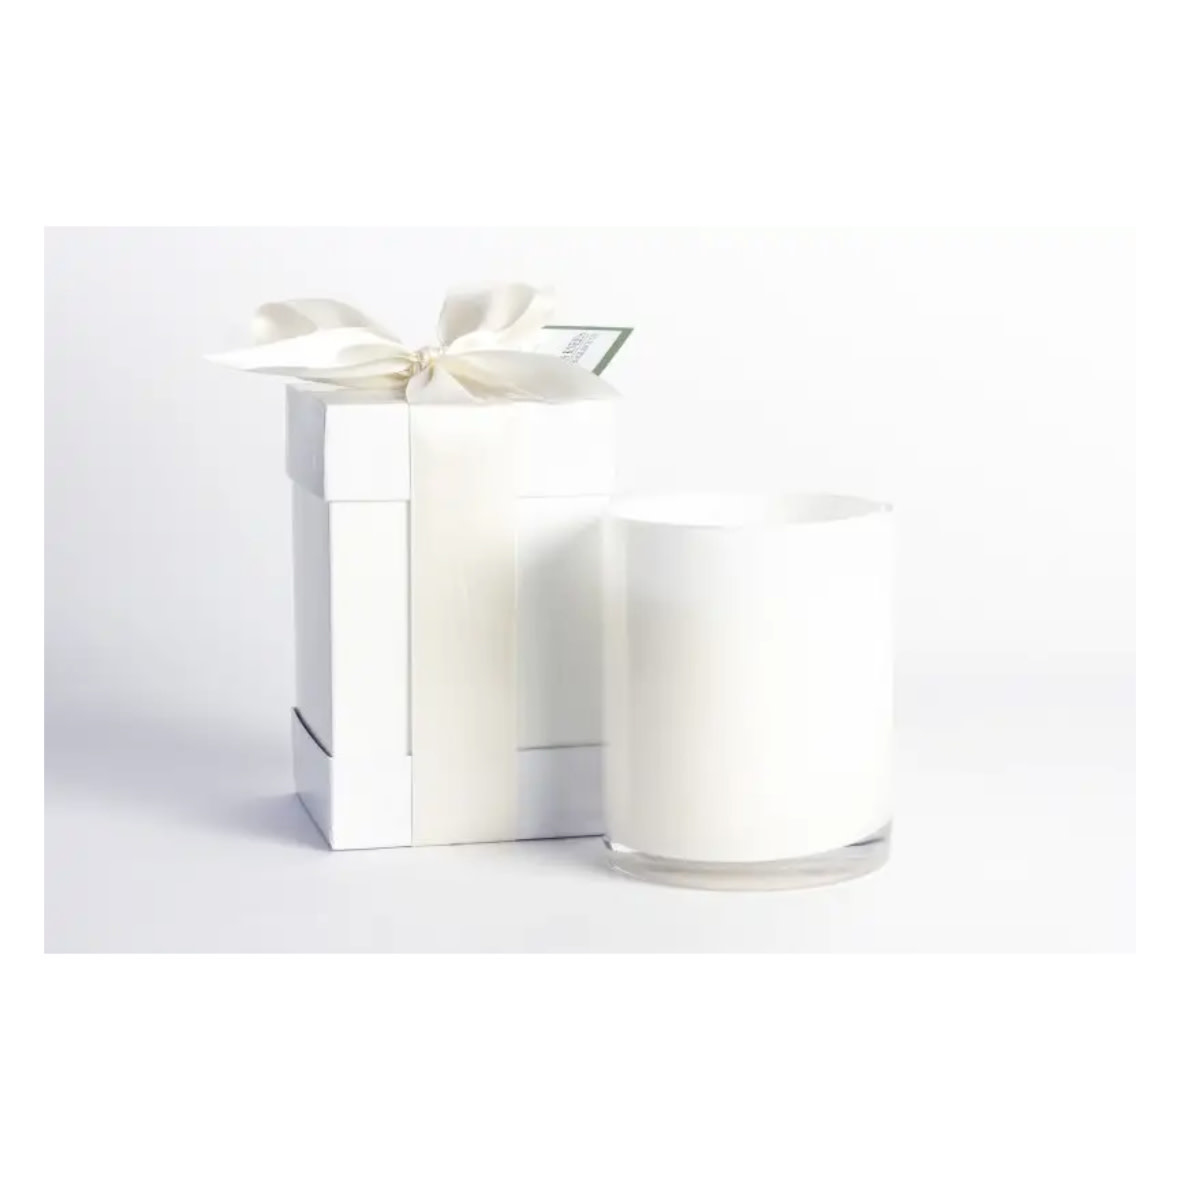 B's Knees Fragrance Co. B's Knees Gardenia 2 Wick White Candle